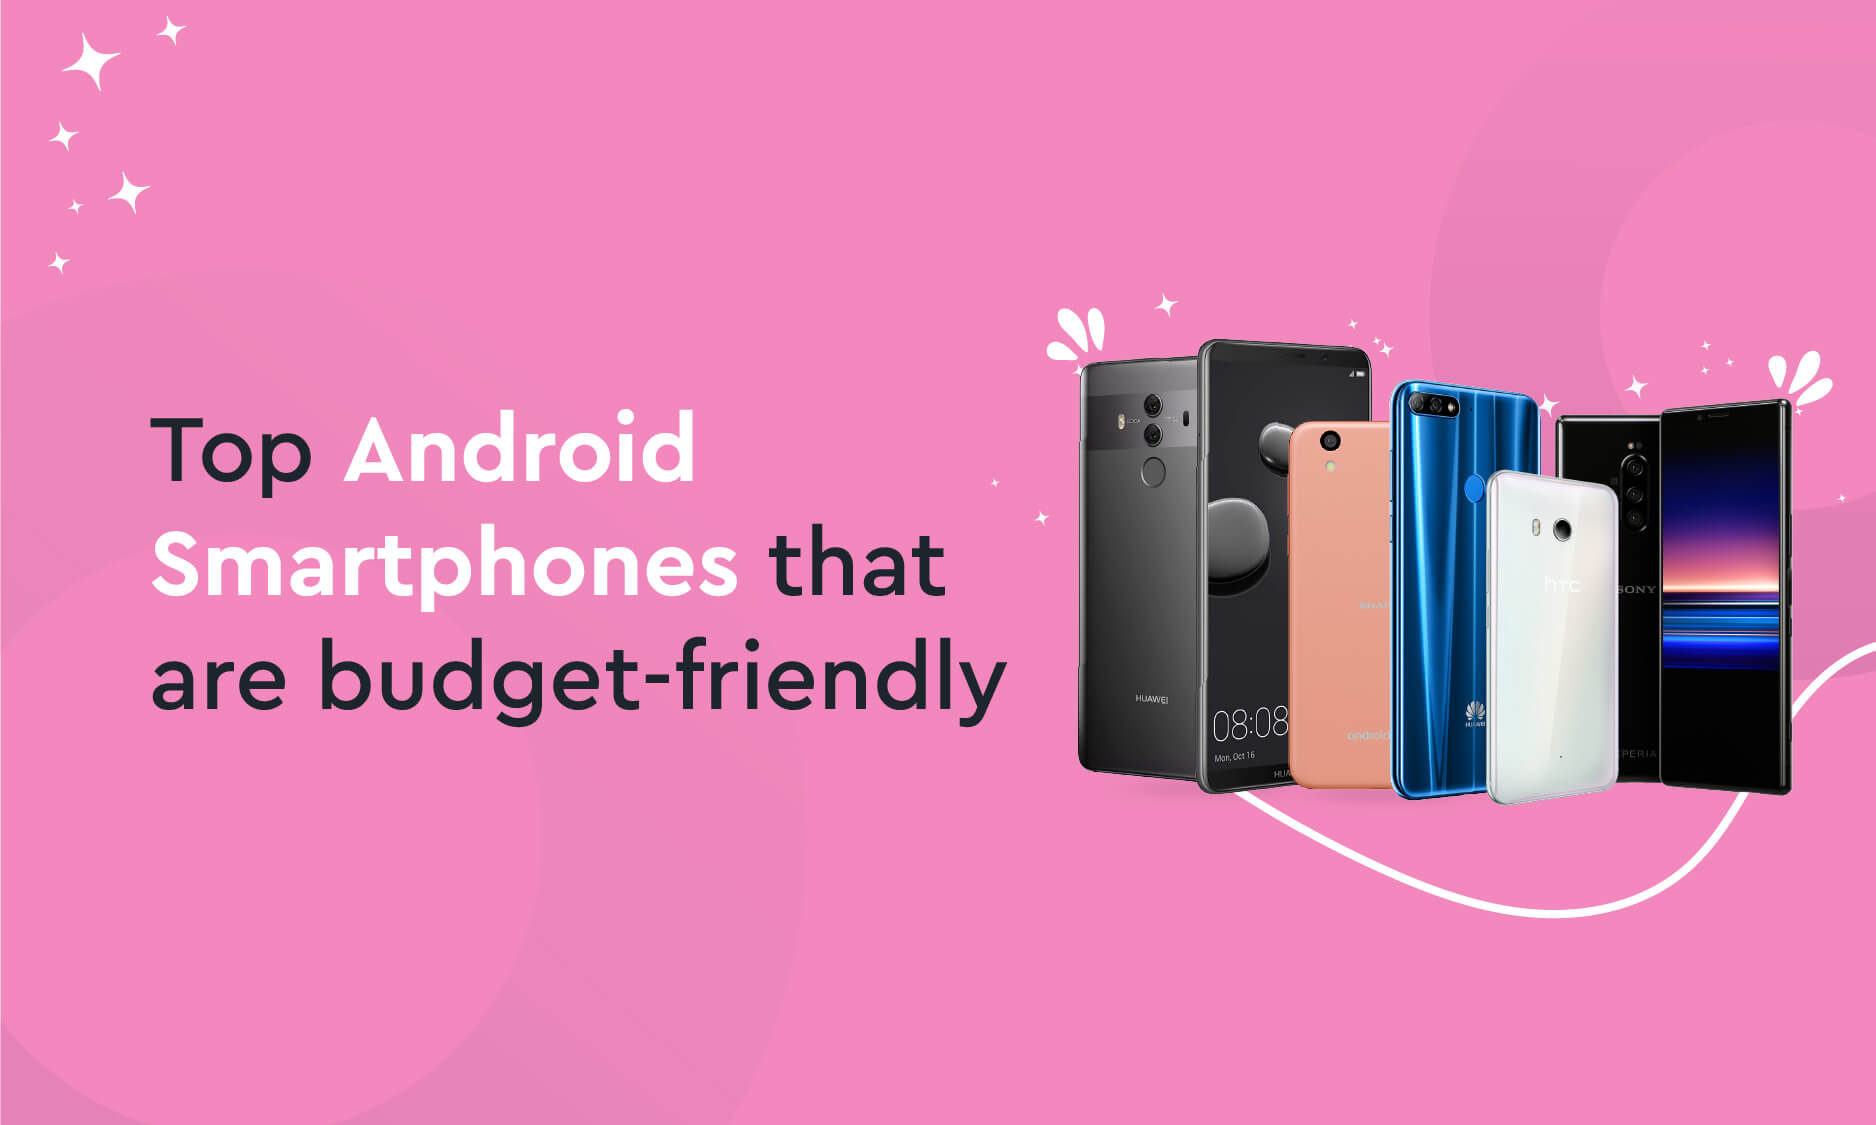 Top Android Smartphones that are budget-friendly